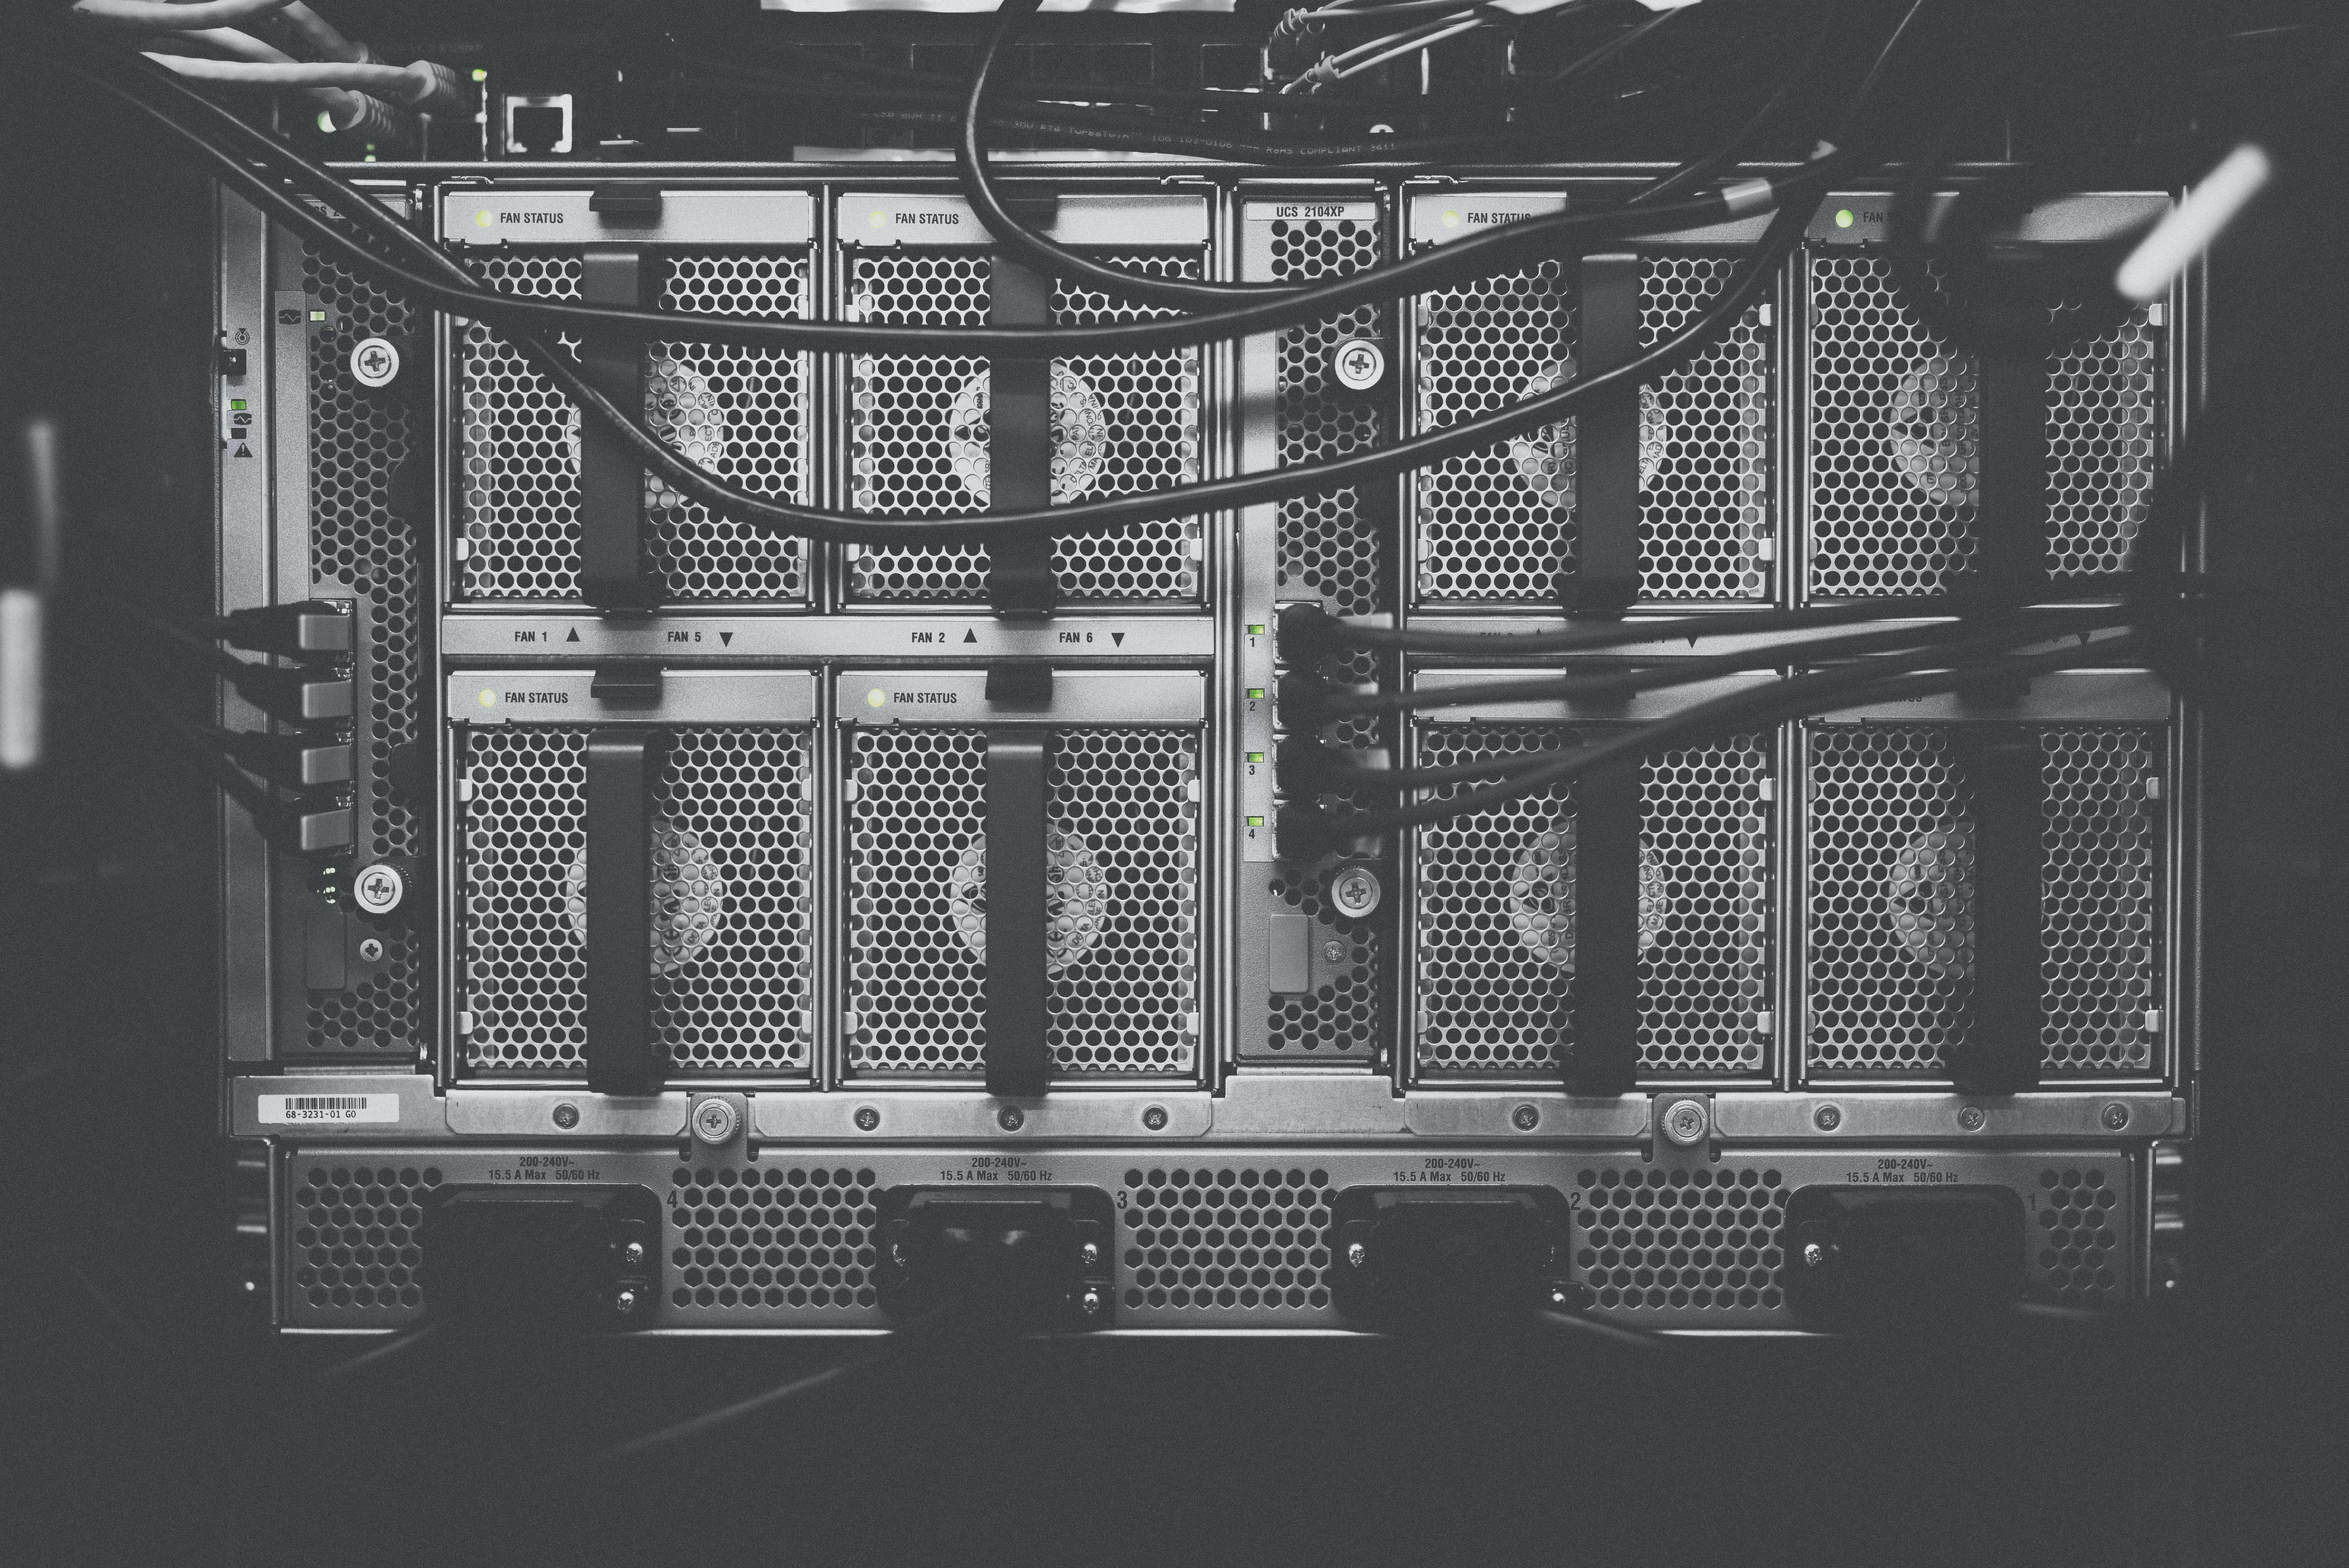 A photo of a server - used as background image